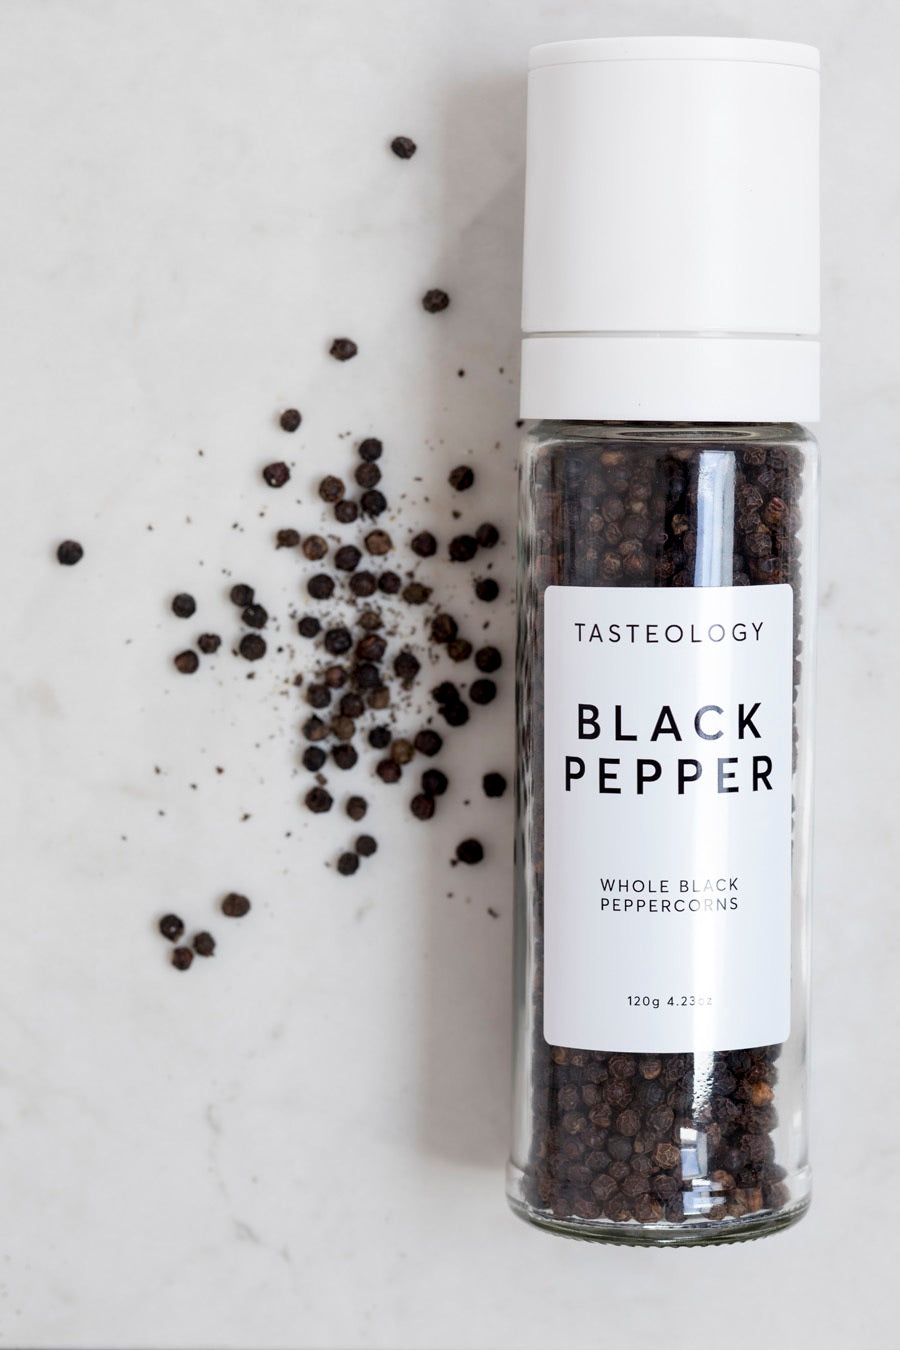 Tasteology - Black pepper